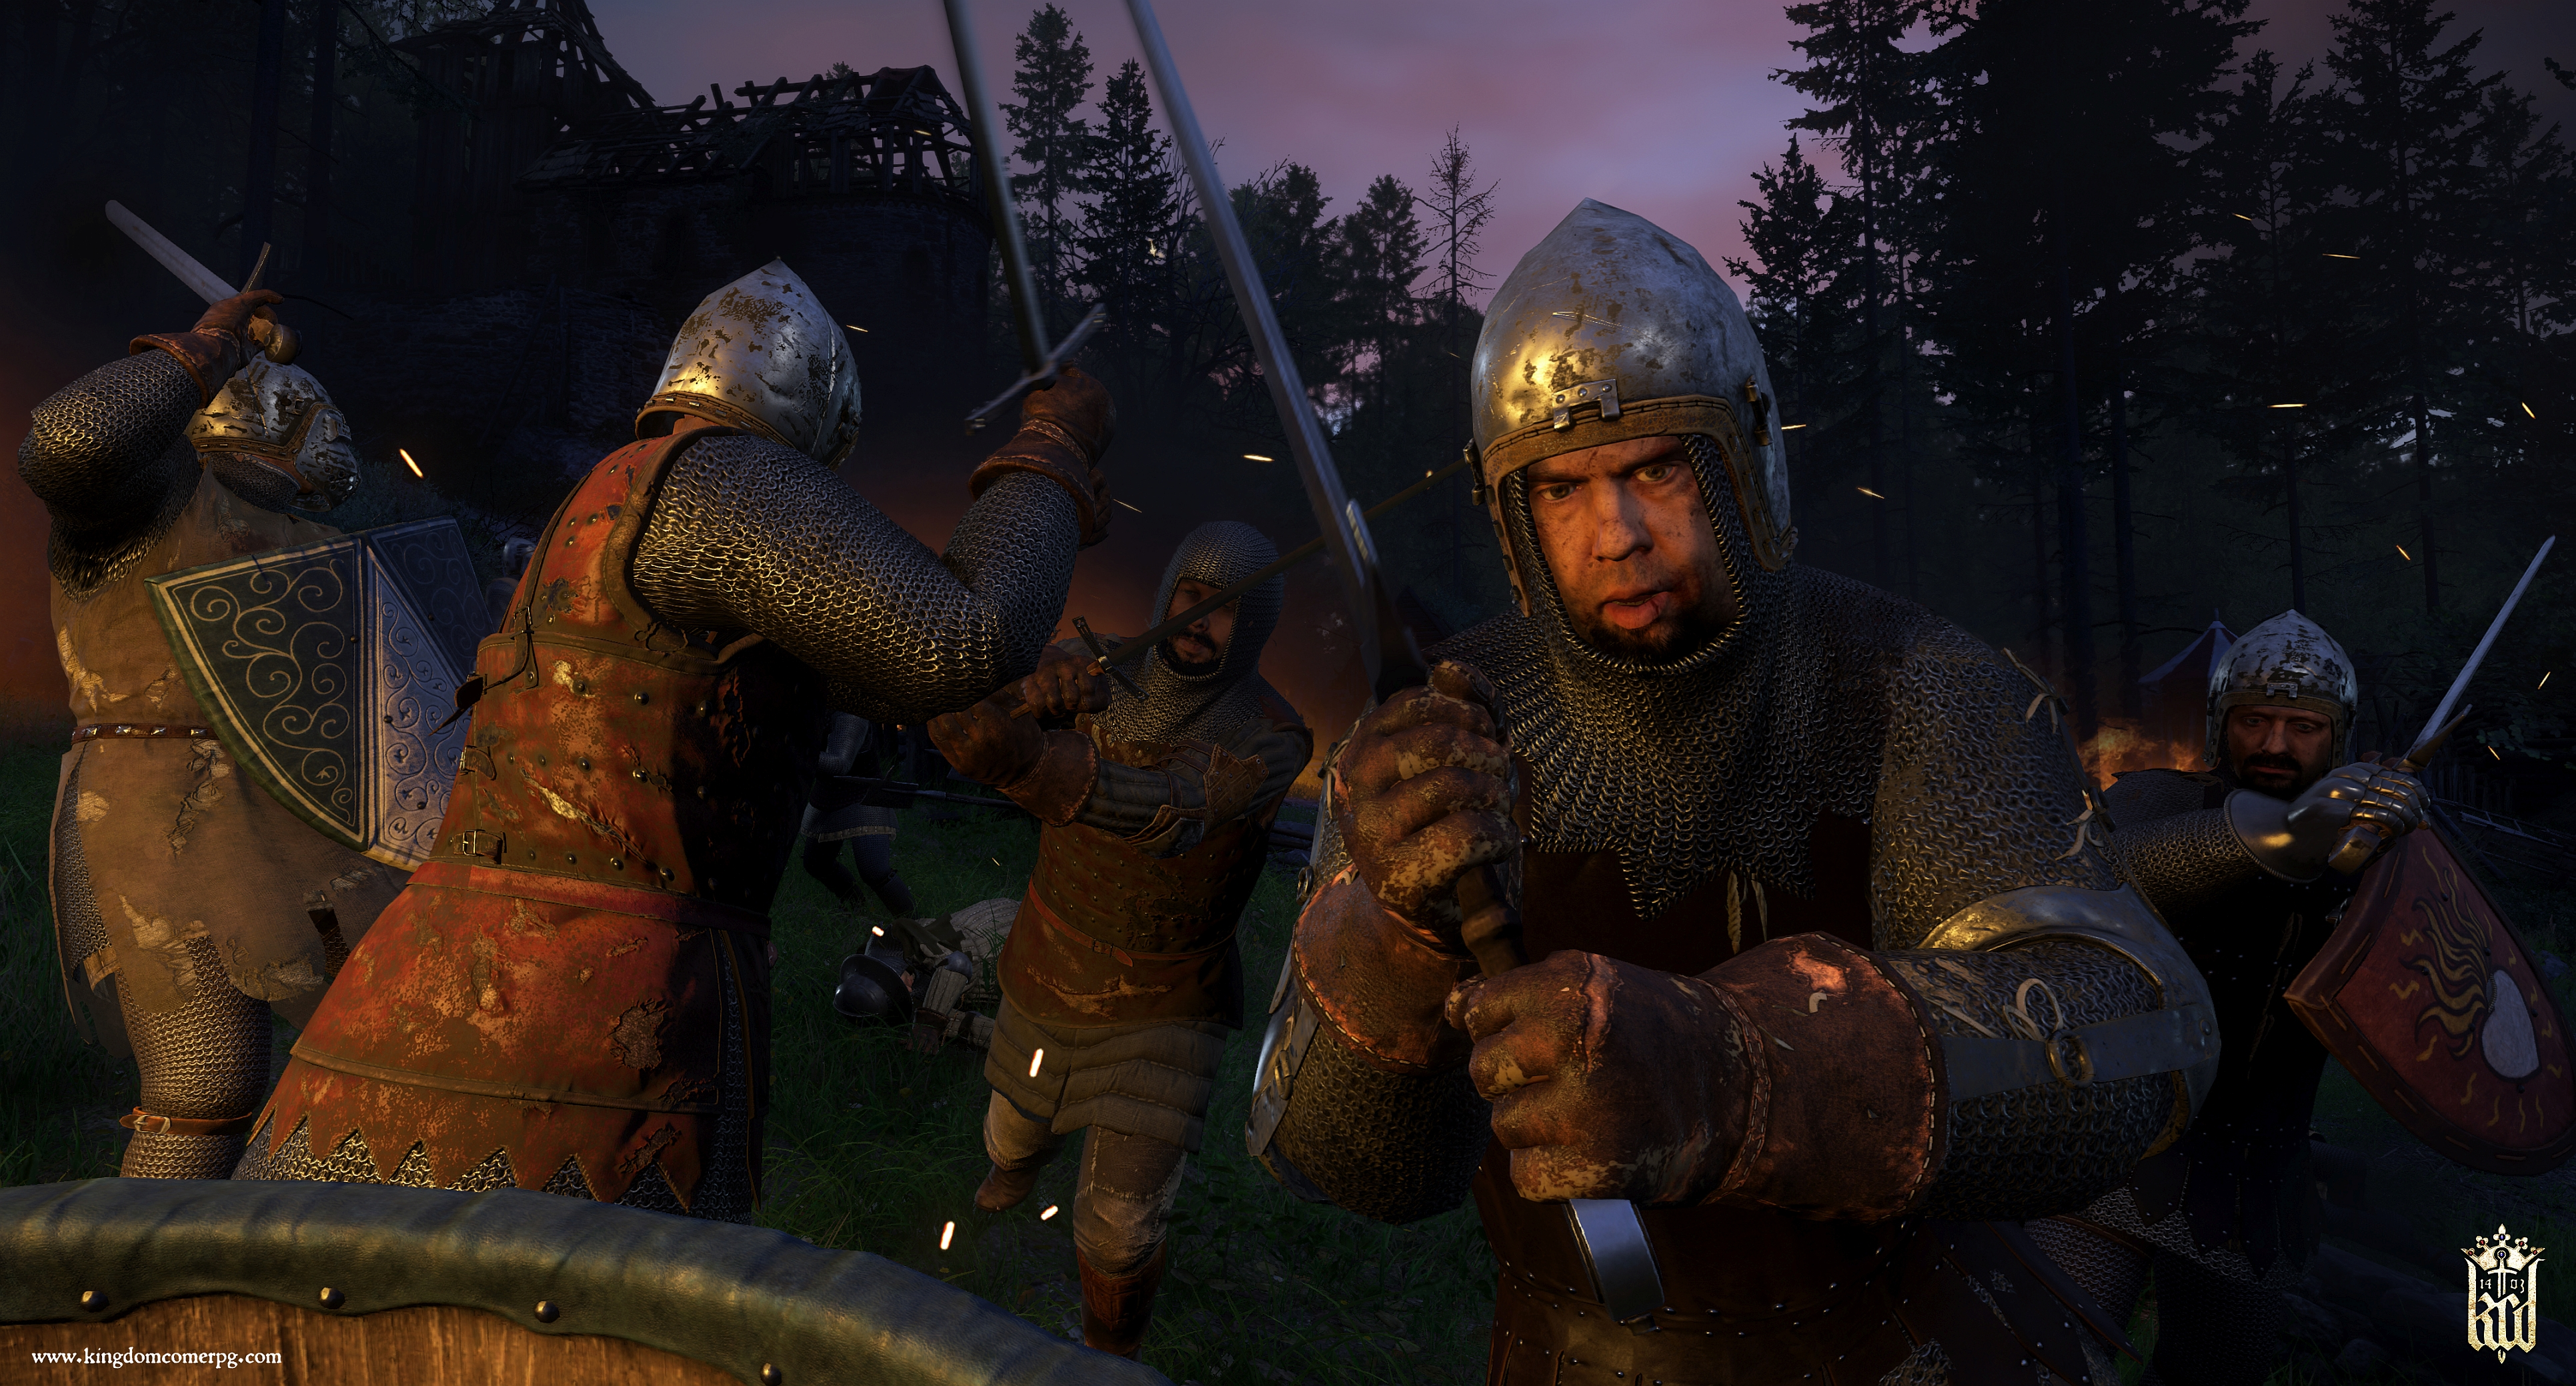 Warhorse: Kingdom Come Deliverance Is A Very Unique Experience That Ignores Many Established RPG Tropes